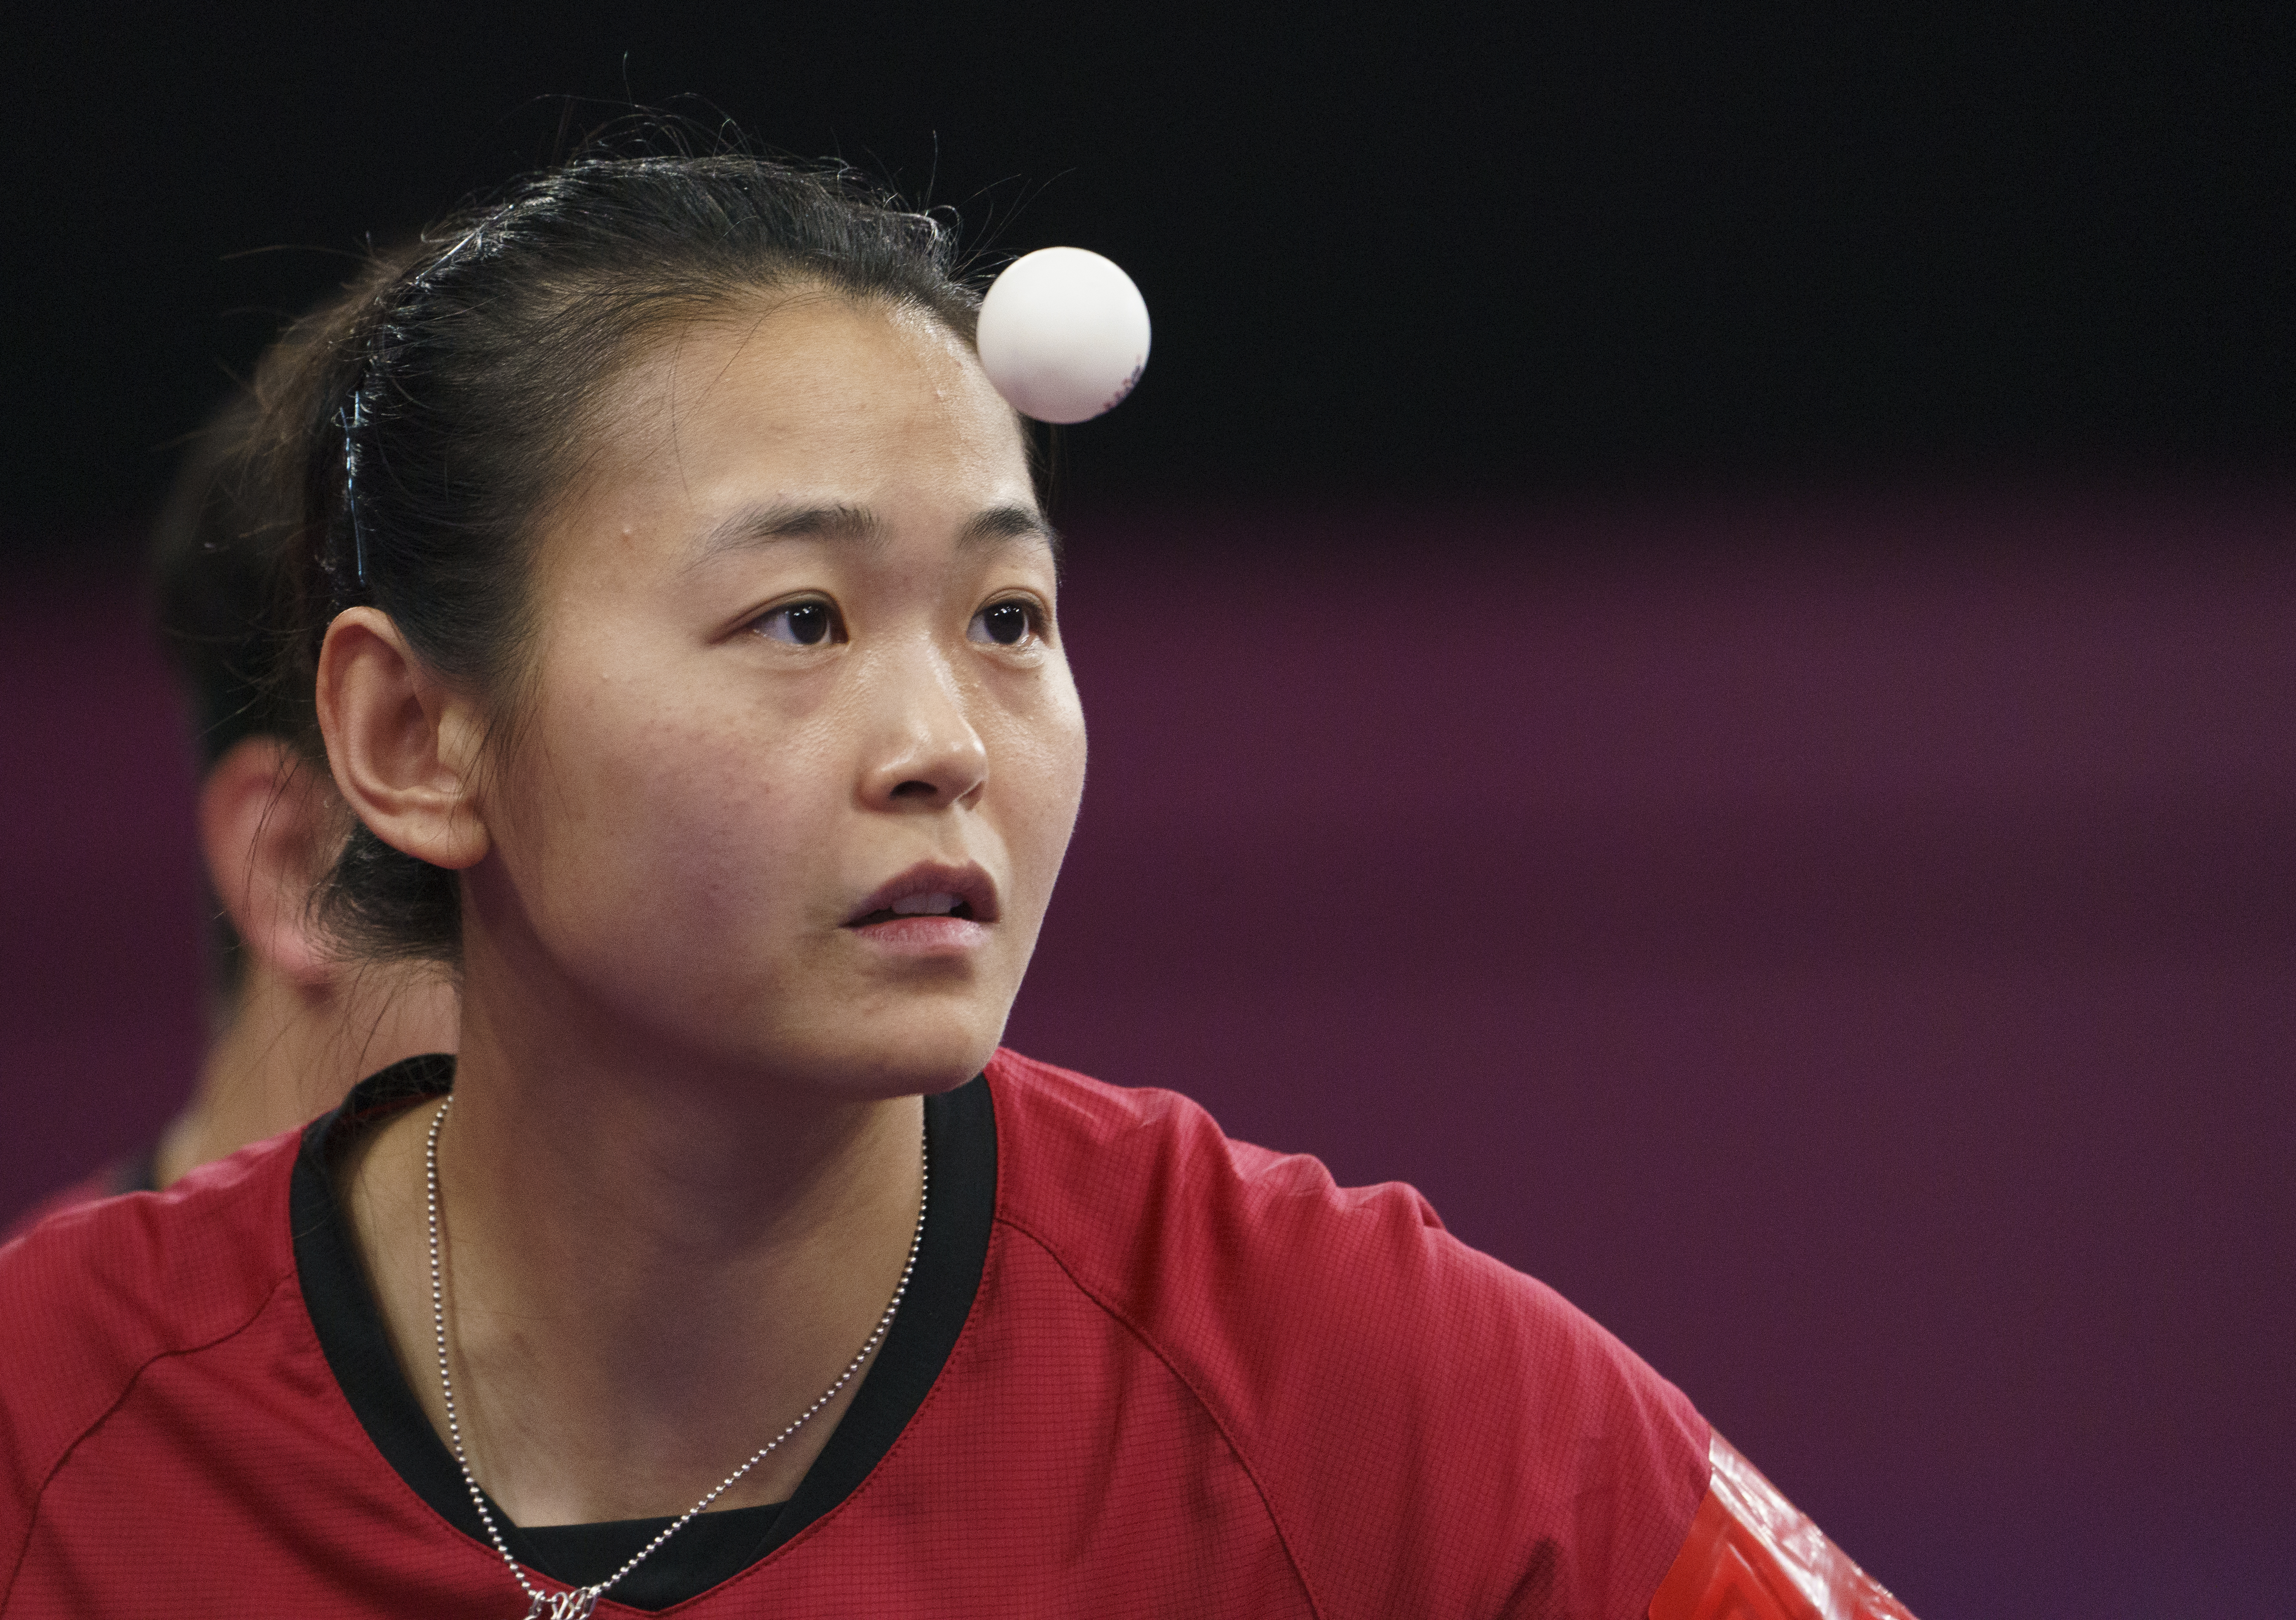 Table tennis ball floats in front of female player